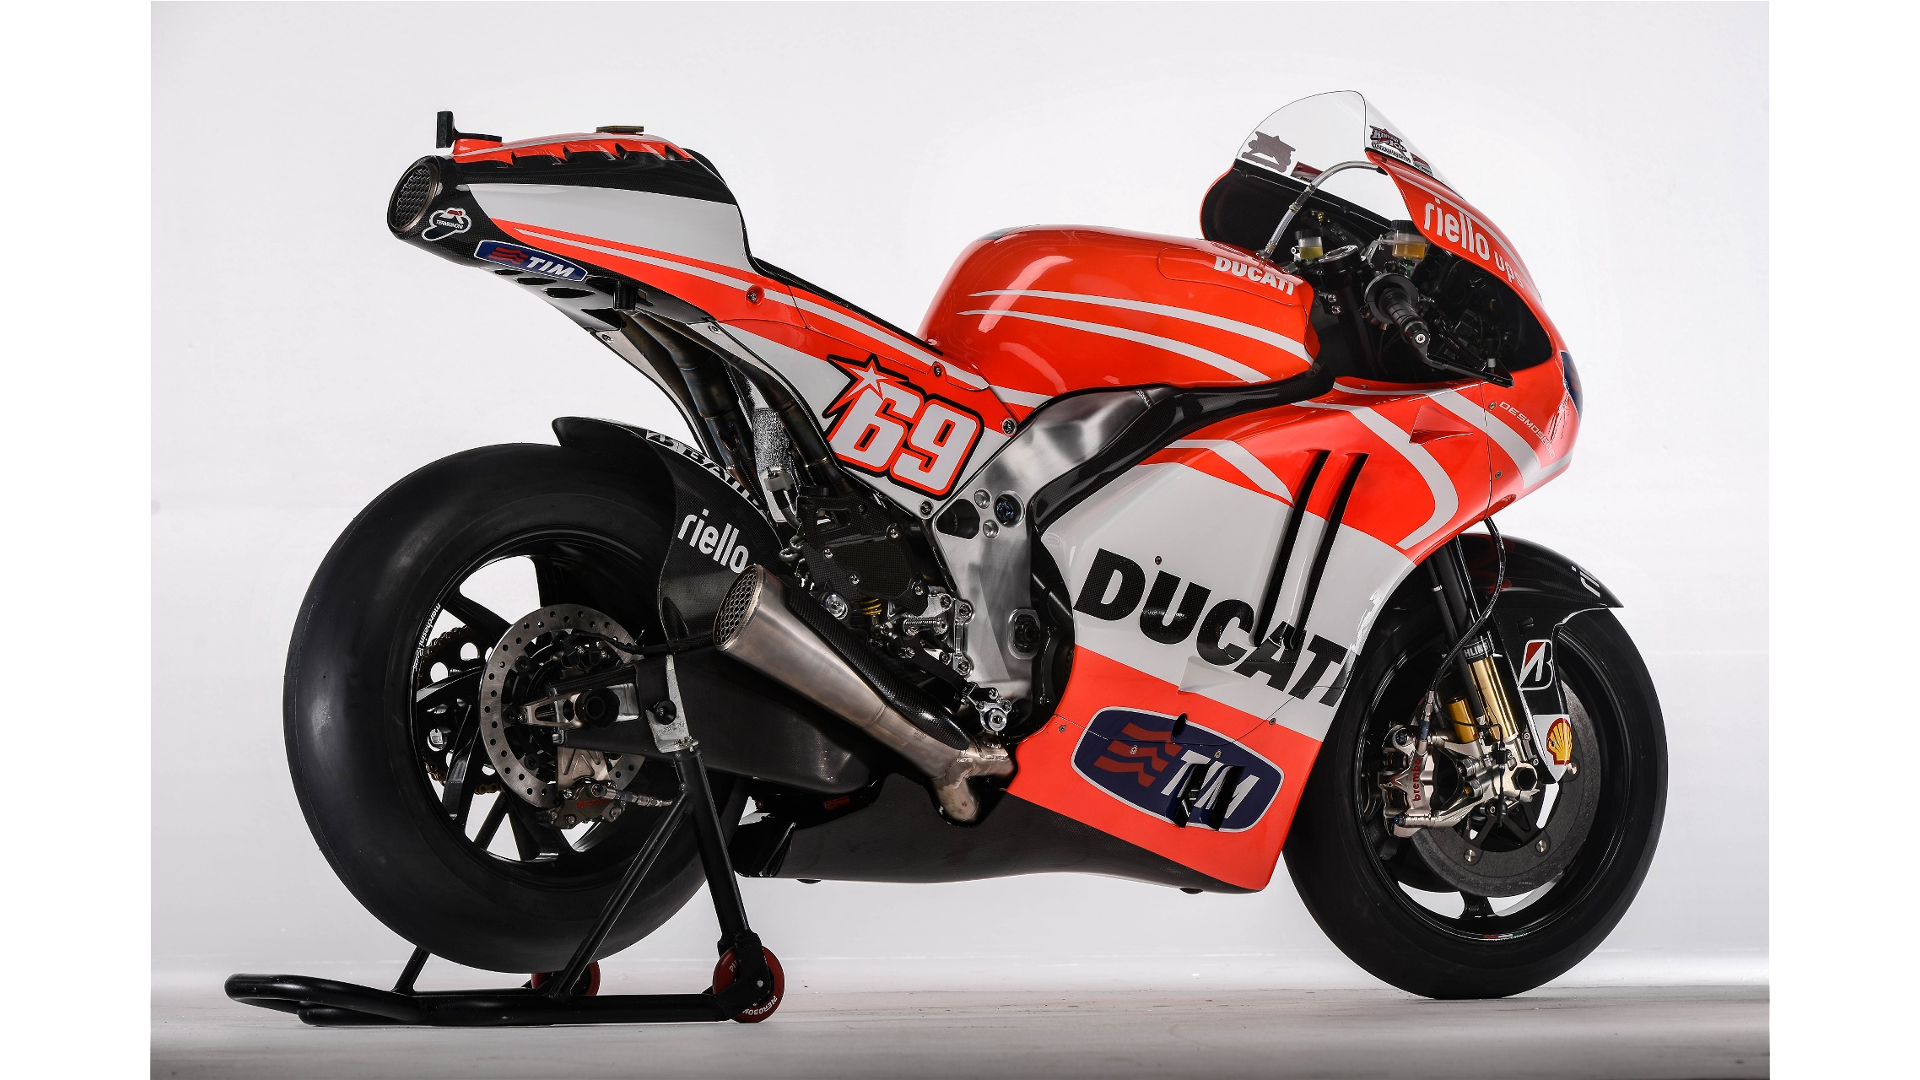 Ducati GP13 - Page 2 Resized_00036954.mediagallery_output_image_%5B1920x1080%5D-O